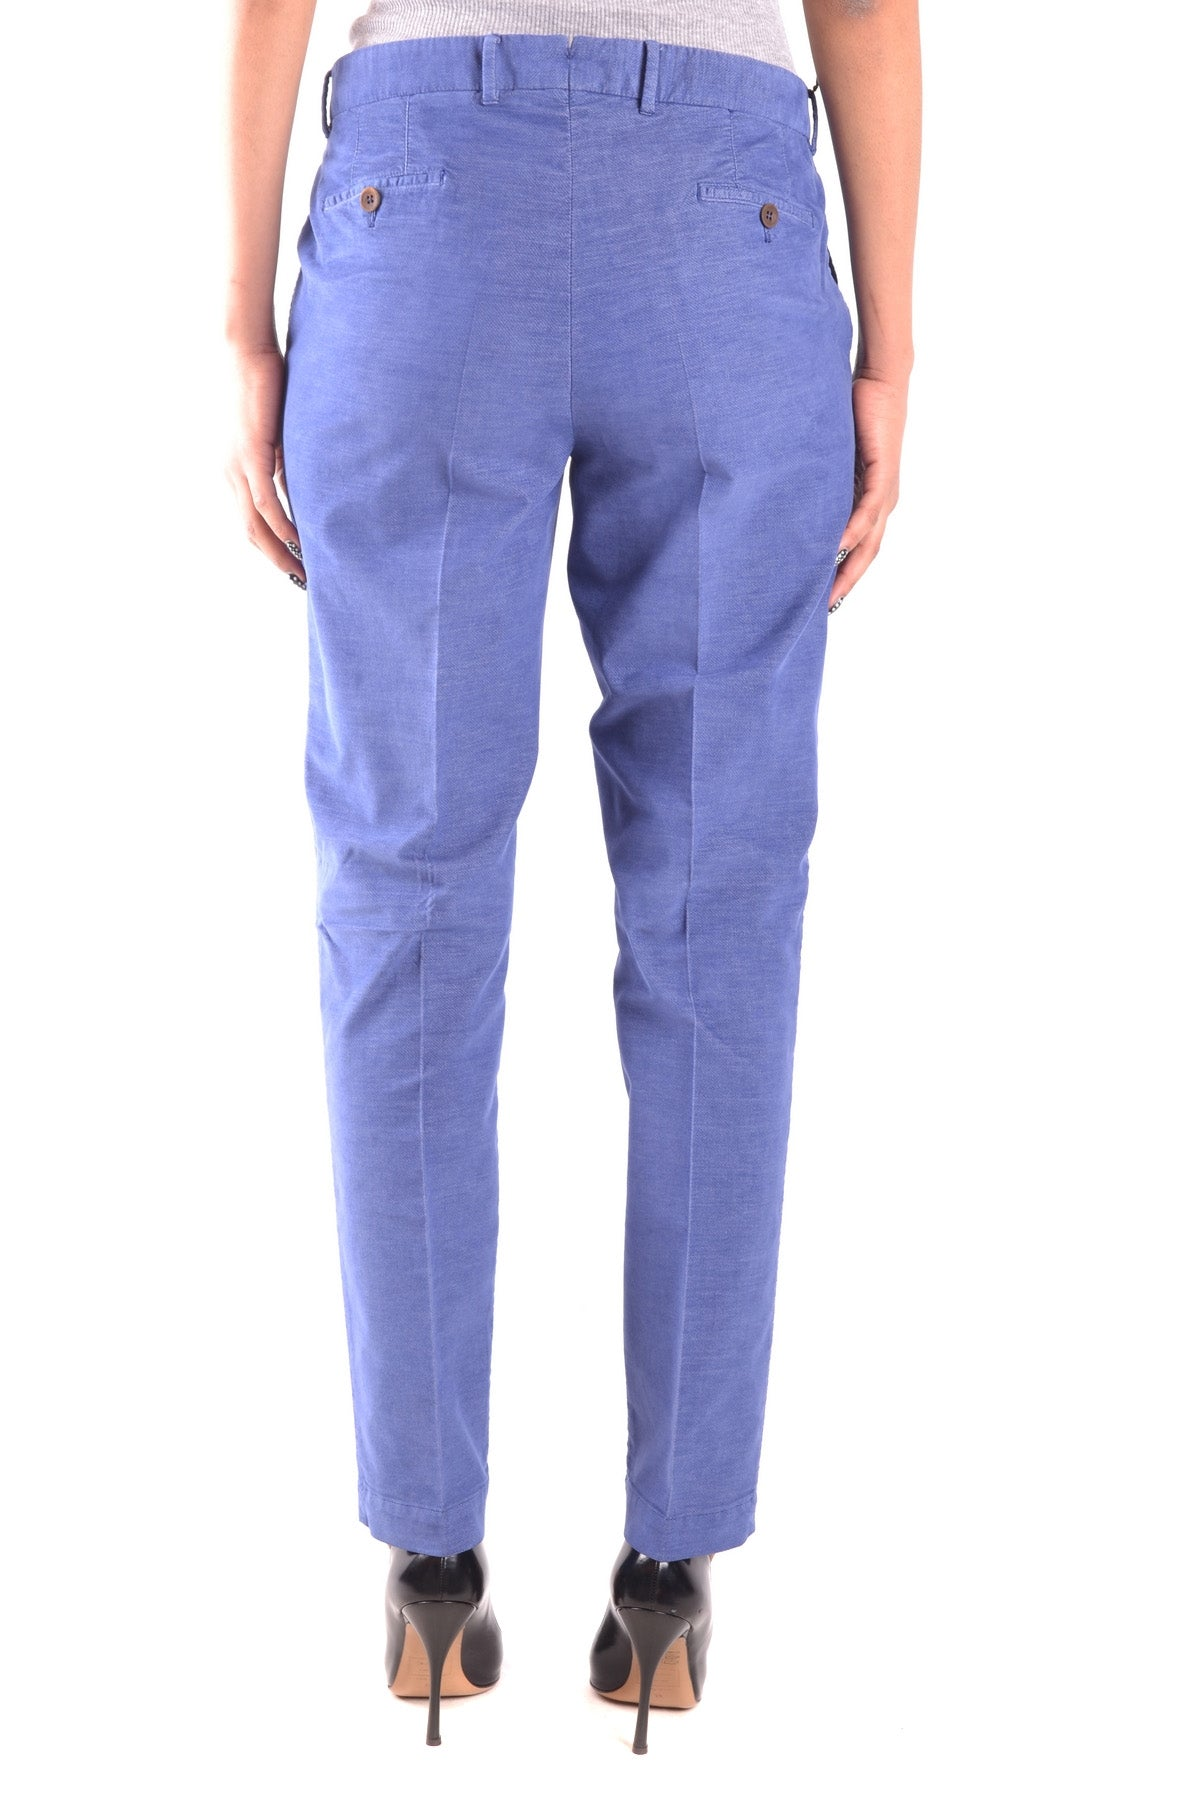 Trousers Pt01/Pt05-Trousers - WOMAN-Product Details Terms: New With LabelMain Color: BlueSeason: Fall / WinterYear: 2017Size: ItGender: WomanClothing Type: TrousersComposition: Cotton 67%, Elastane 1%, Polyester 32%-Keyomi-Sook